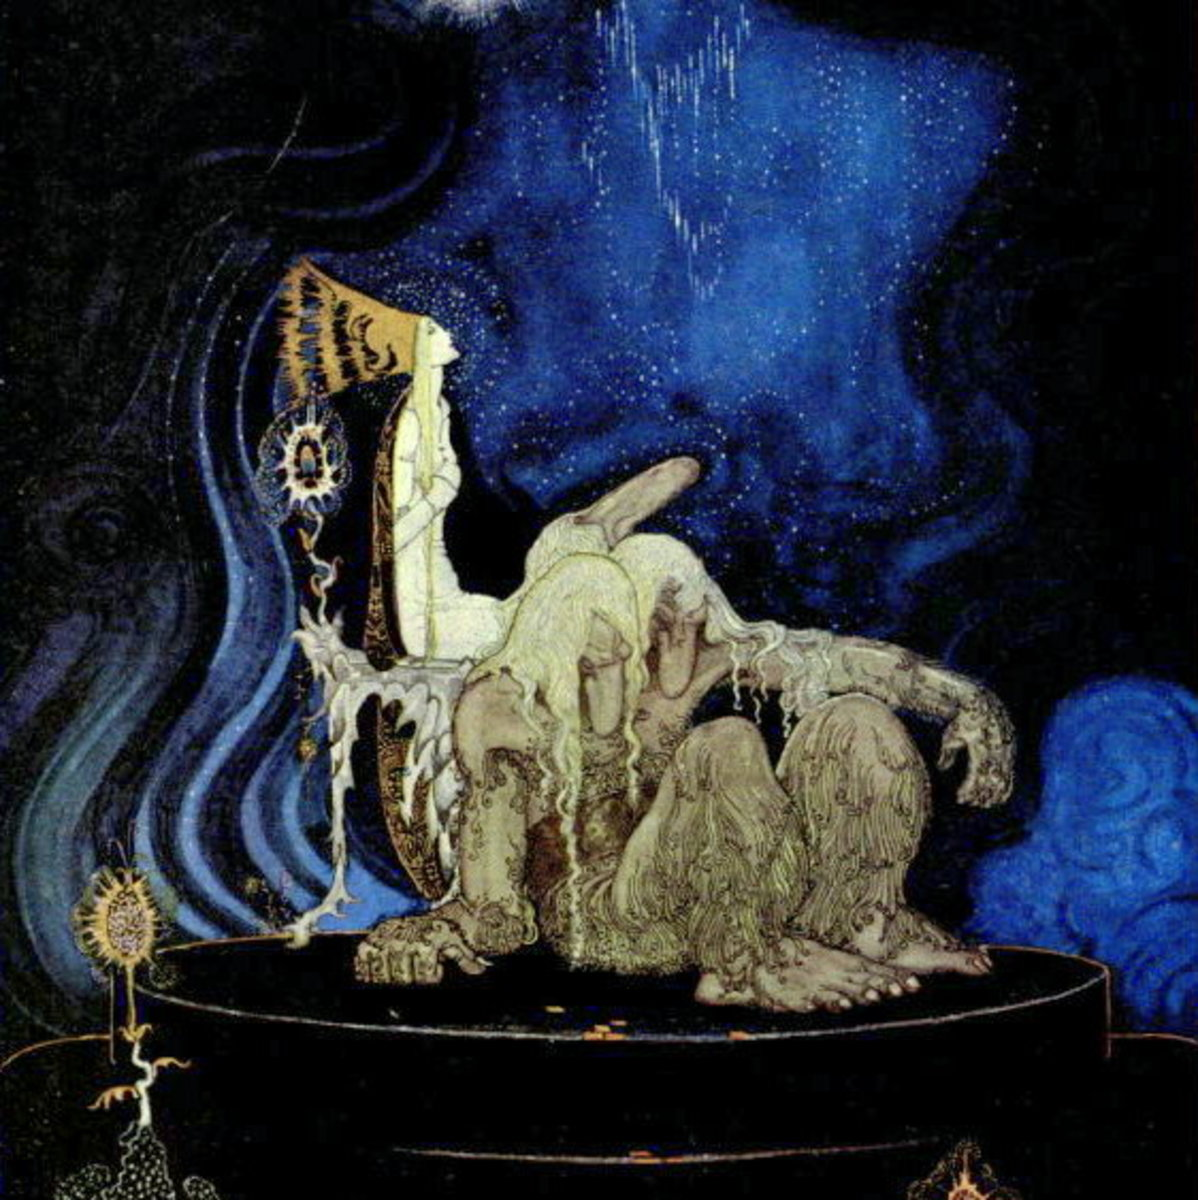 Illustration by Kay Nielsen